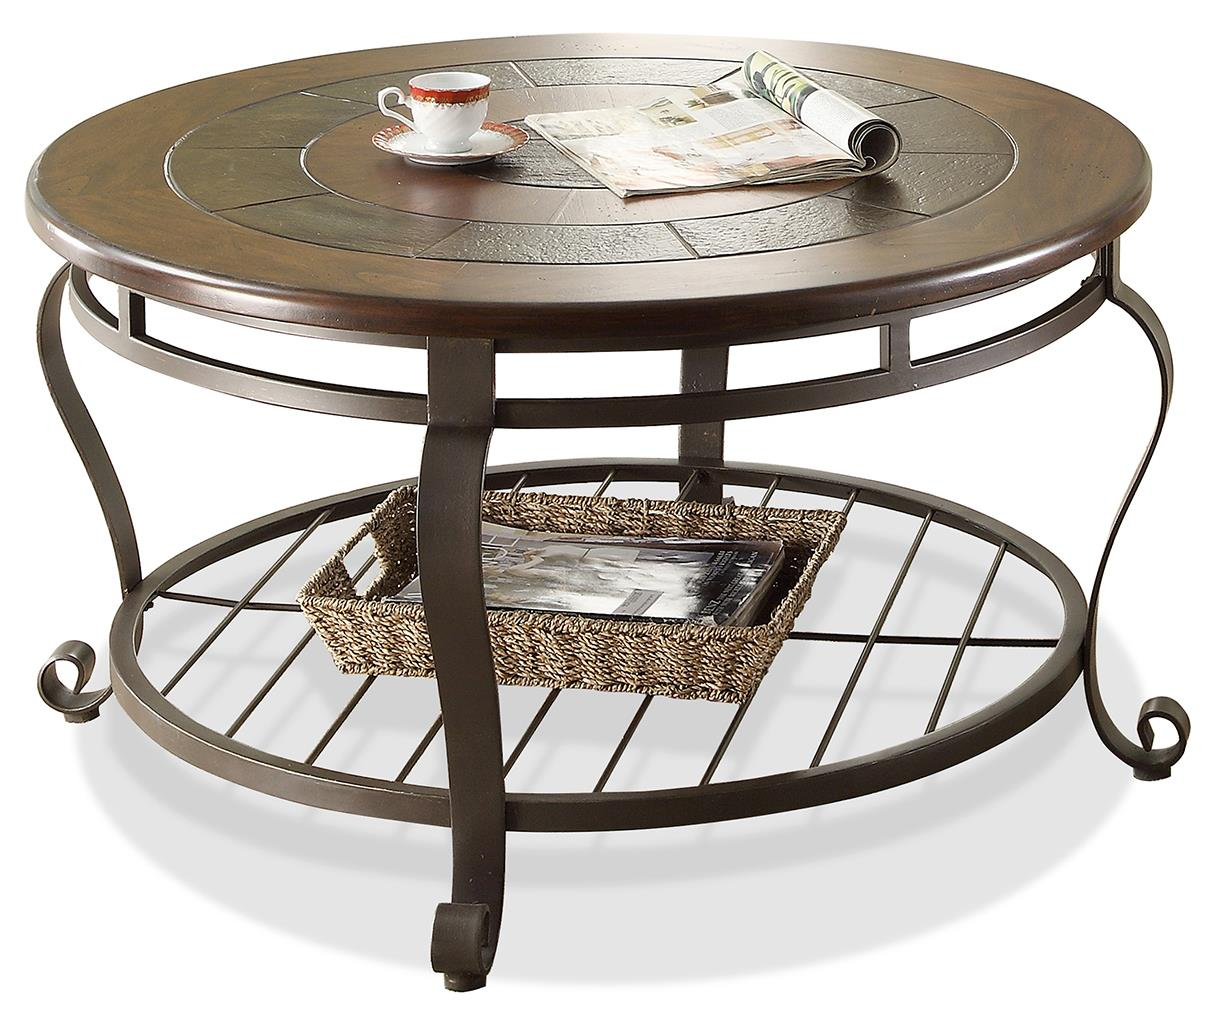 Riverside Furniture Eastview Round Coffee Table - Item Number: 54705